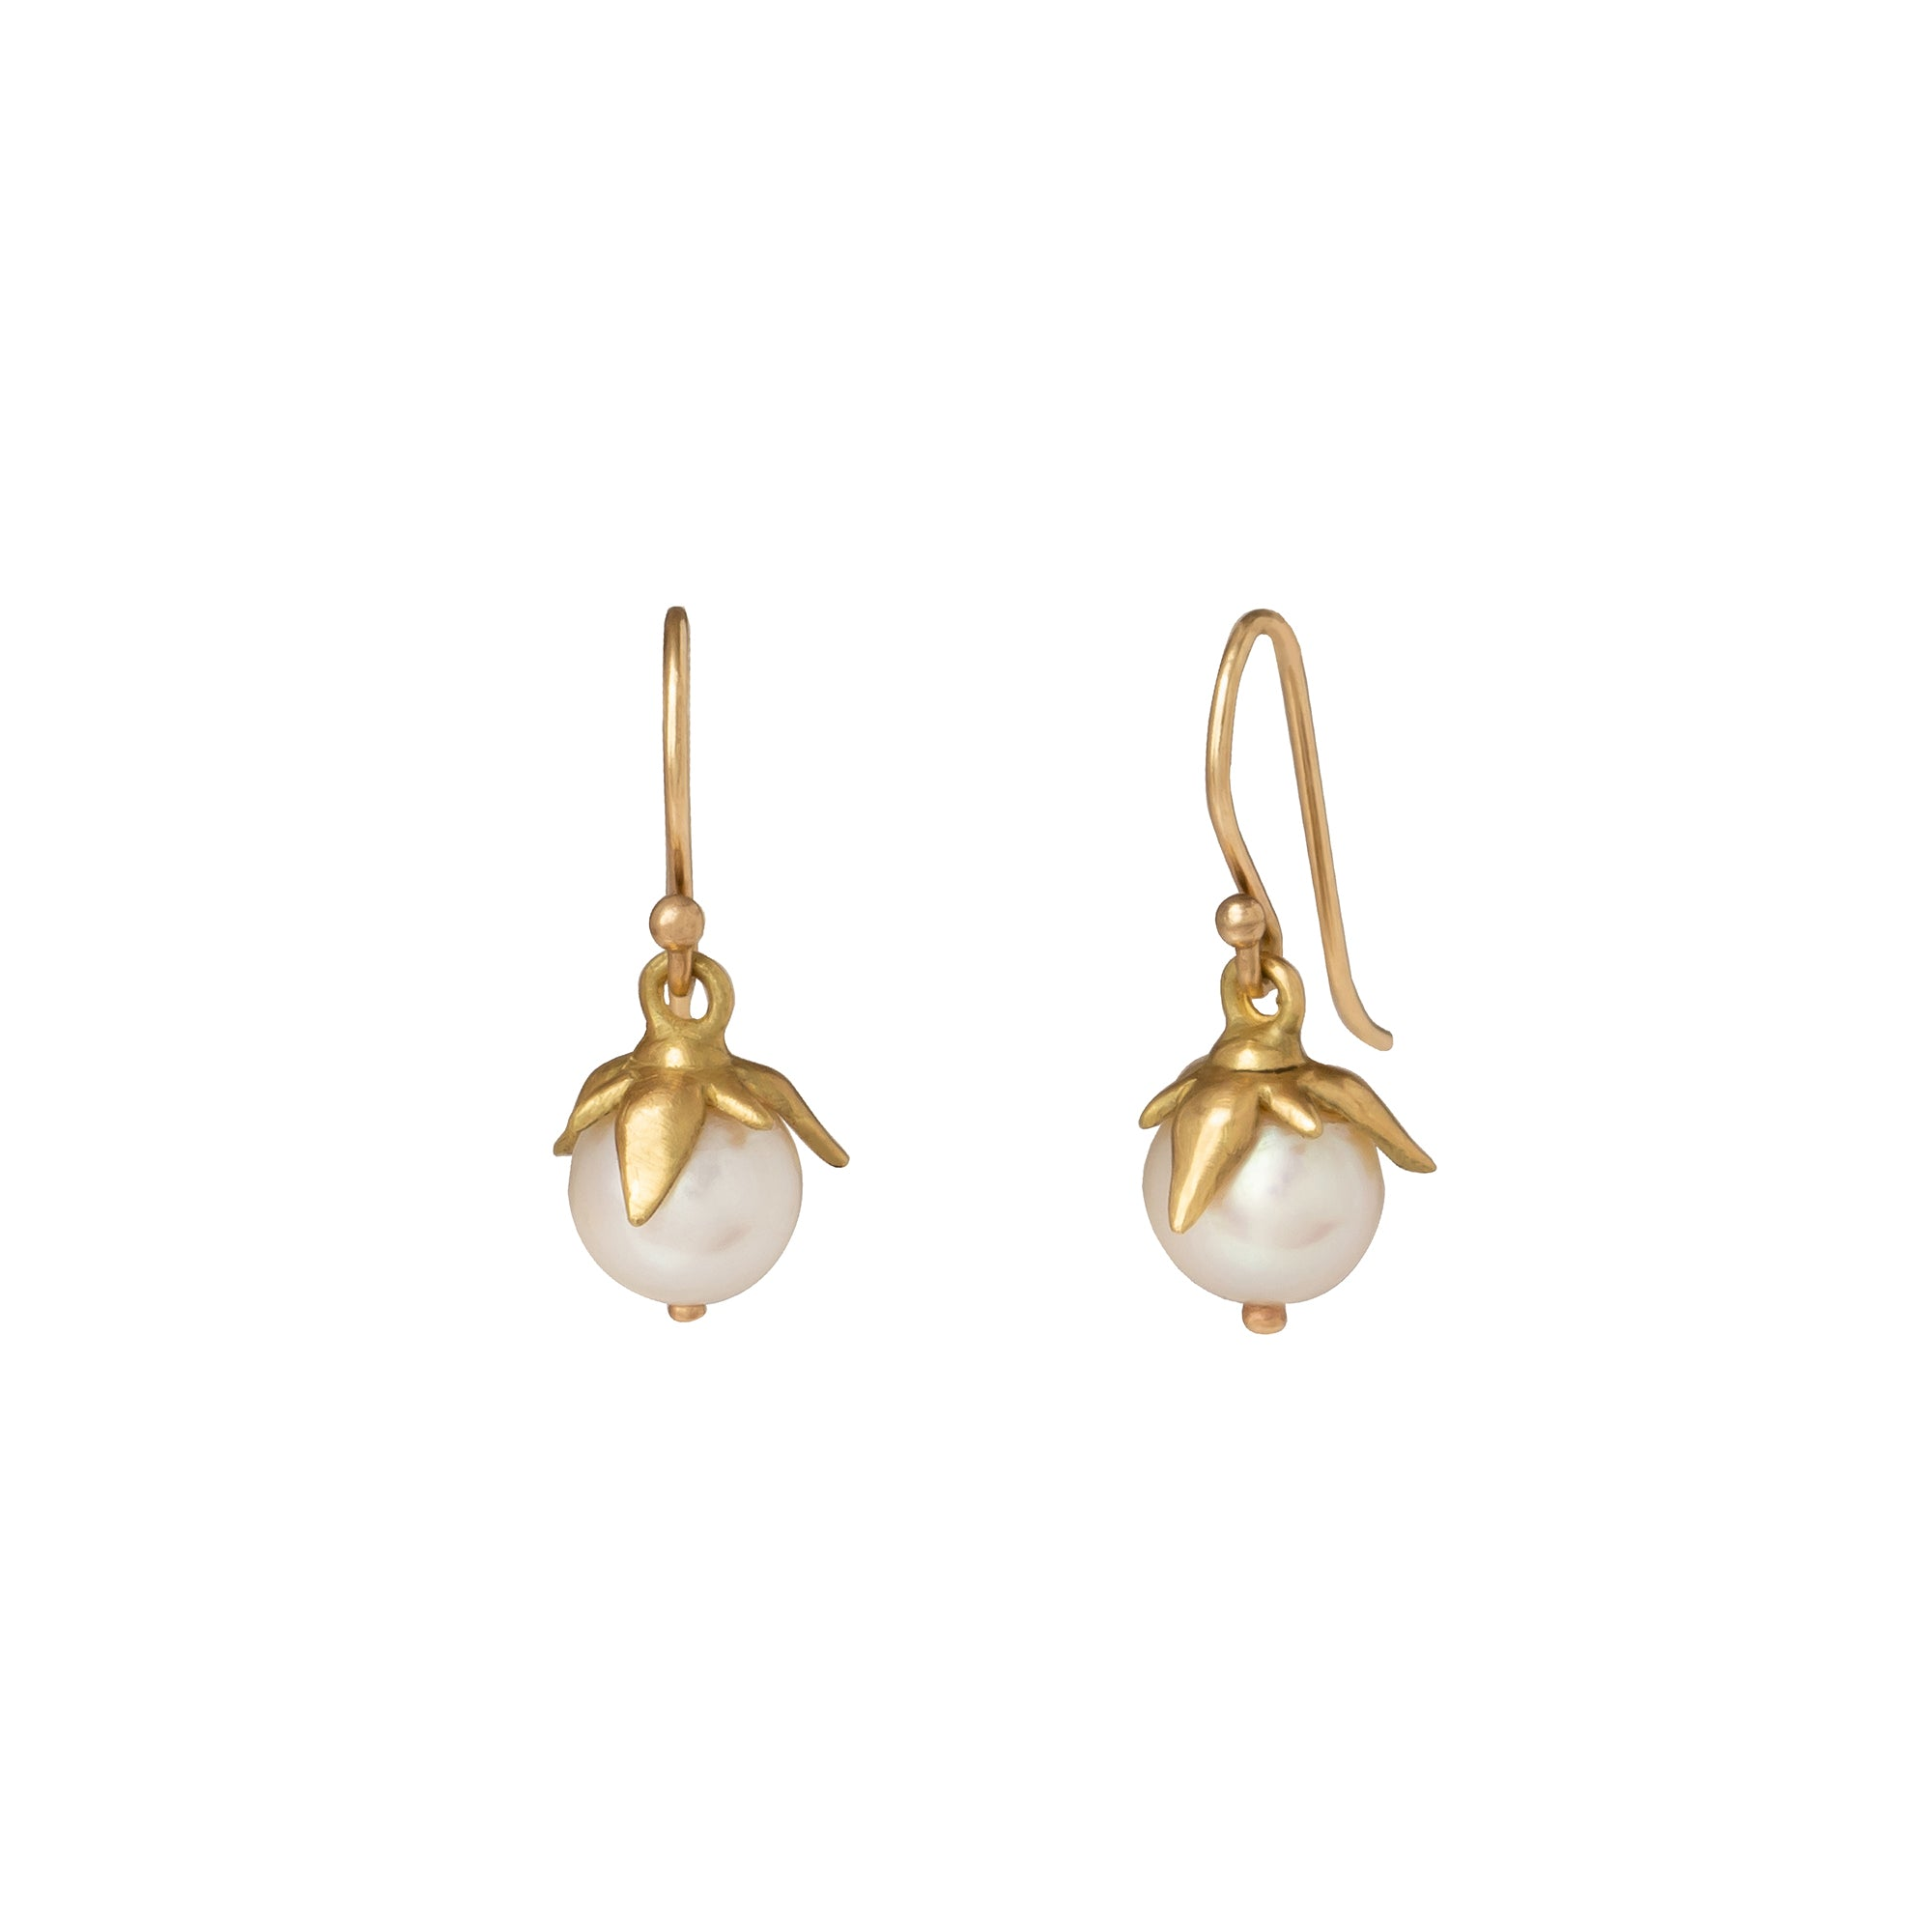 White Pearl Berries Earrings - Annette Ferdinansen - Earrings | Broken English Jewelry